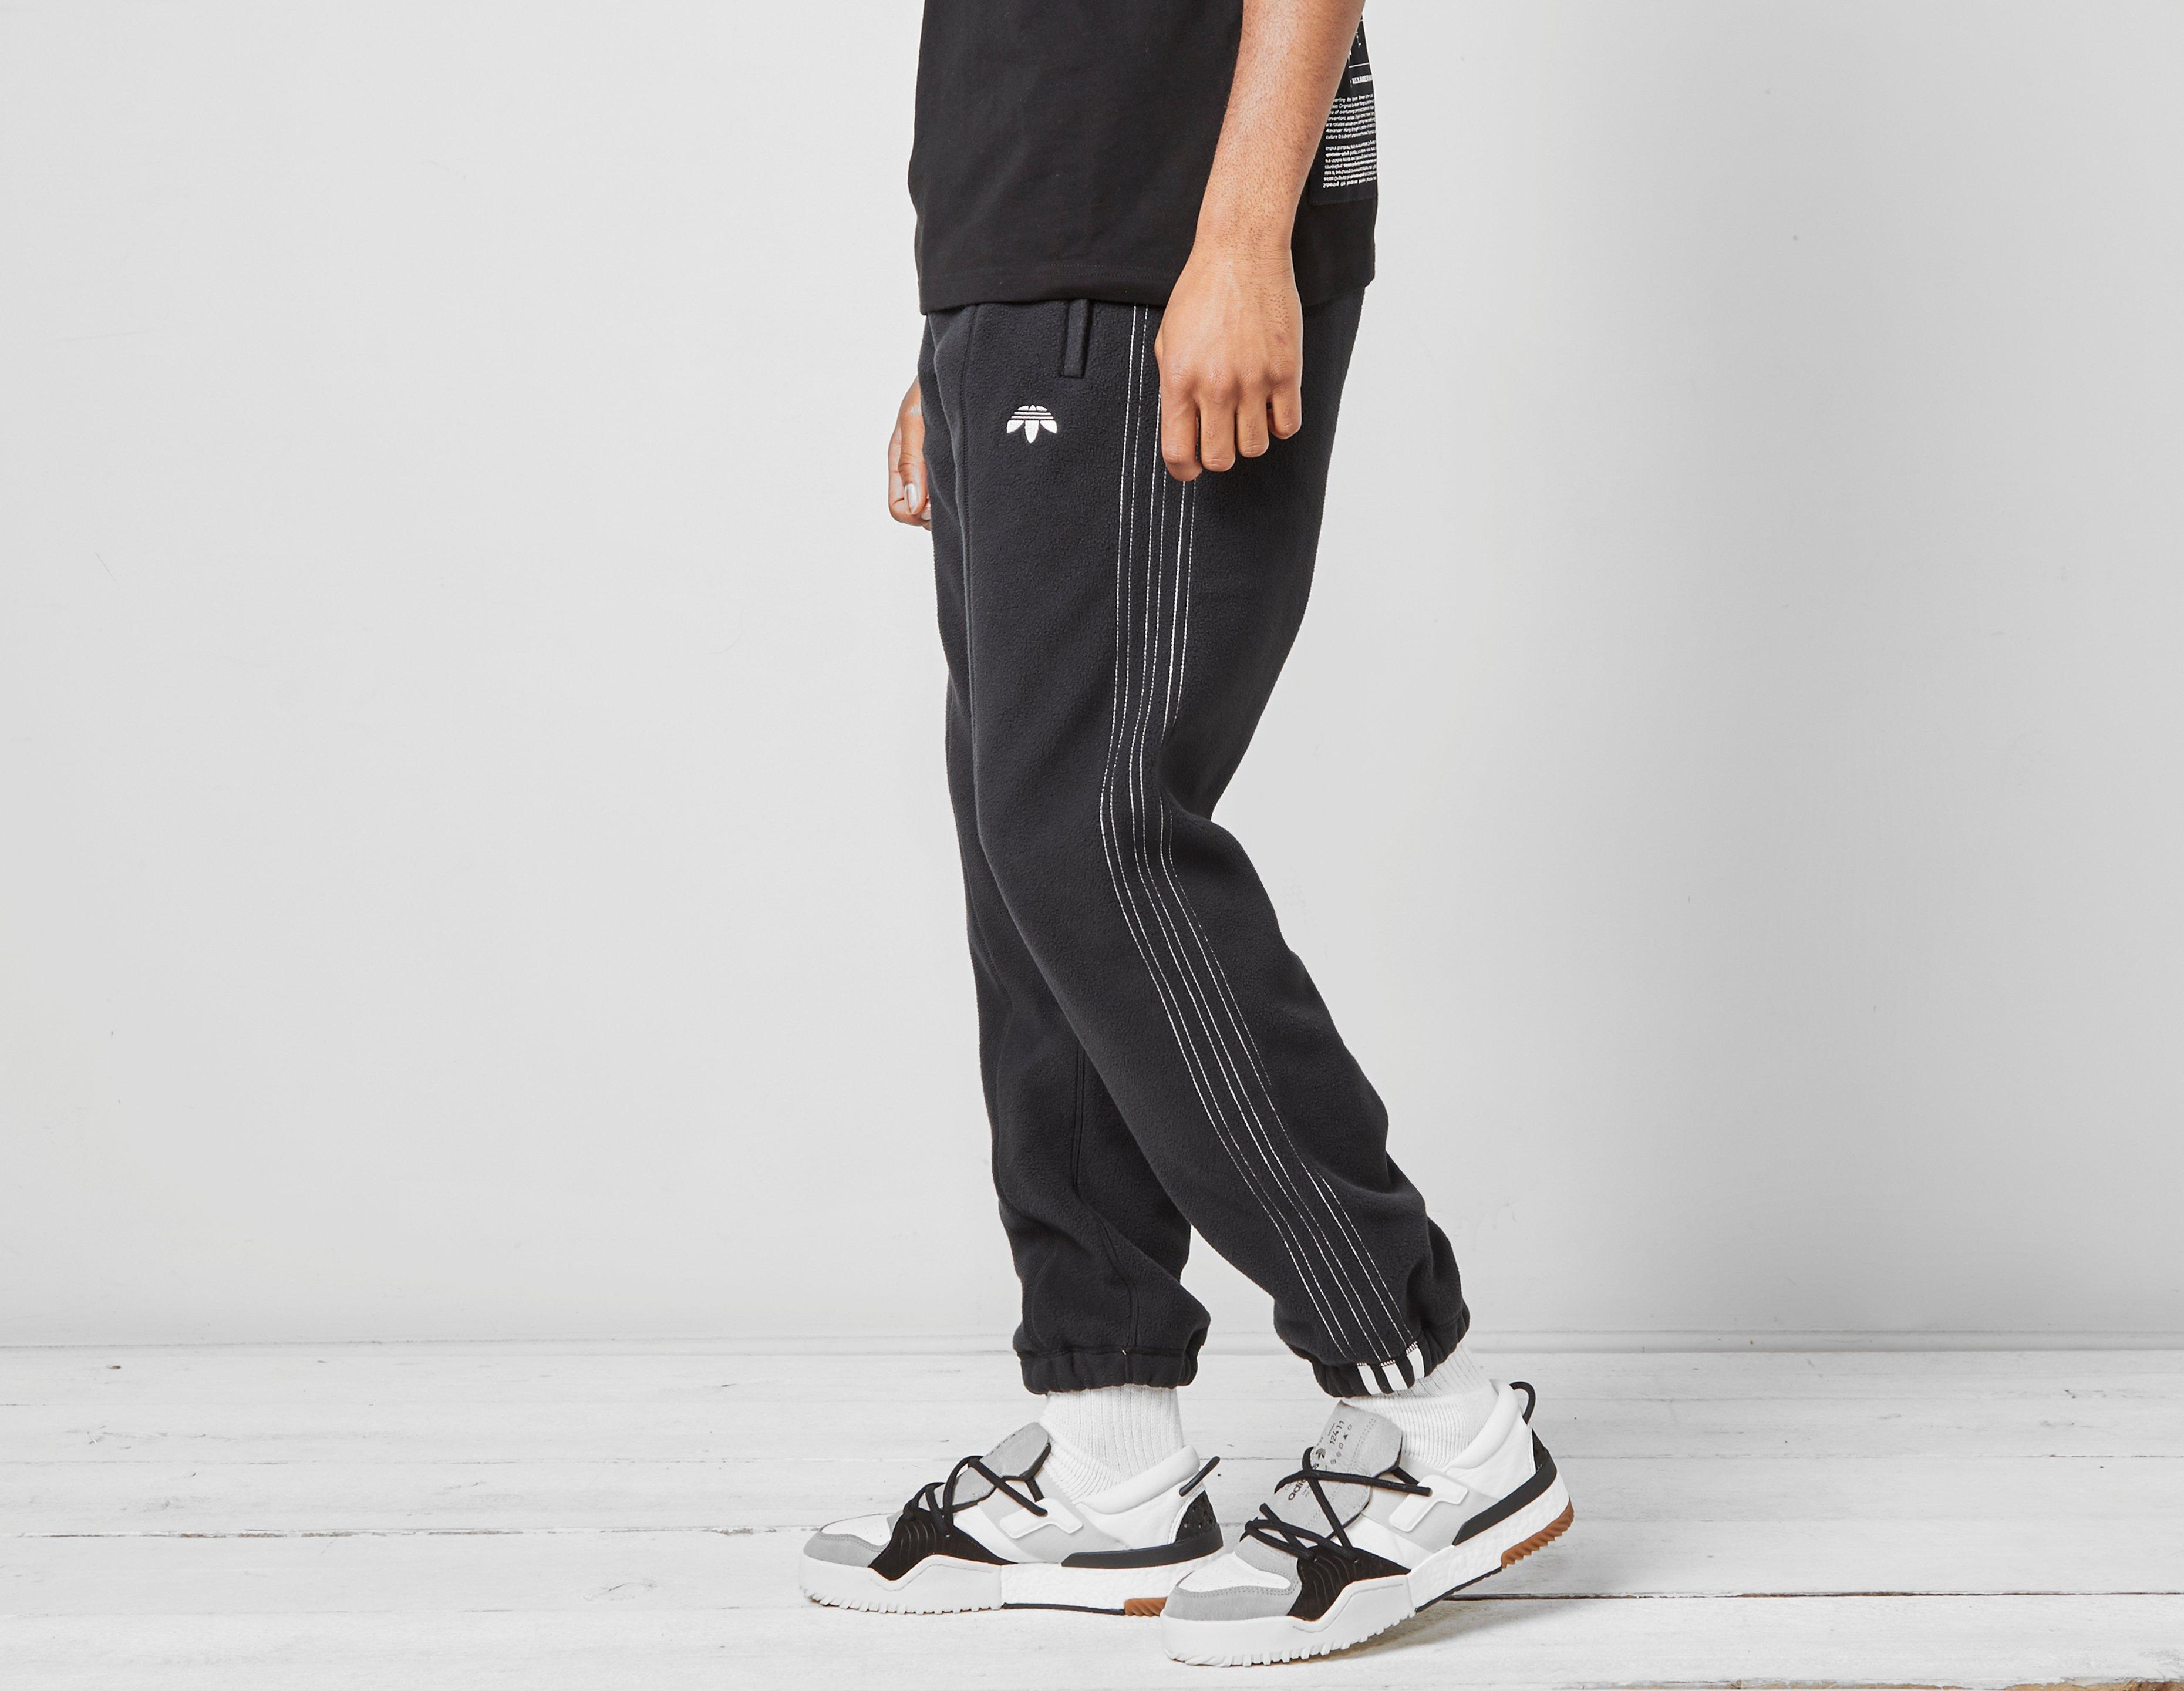 998482ecdd4427 ... buy popular Adidas Originals By Alexander Wang Polar Jogger in Black  for Men - Lyst 52d89 ...